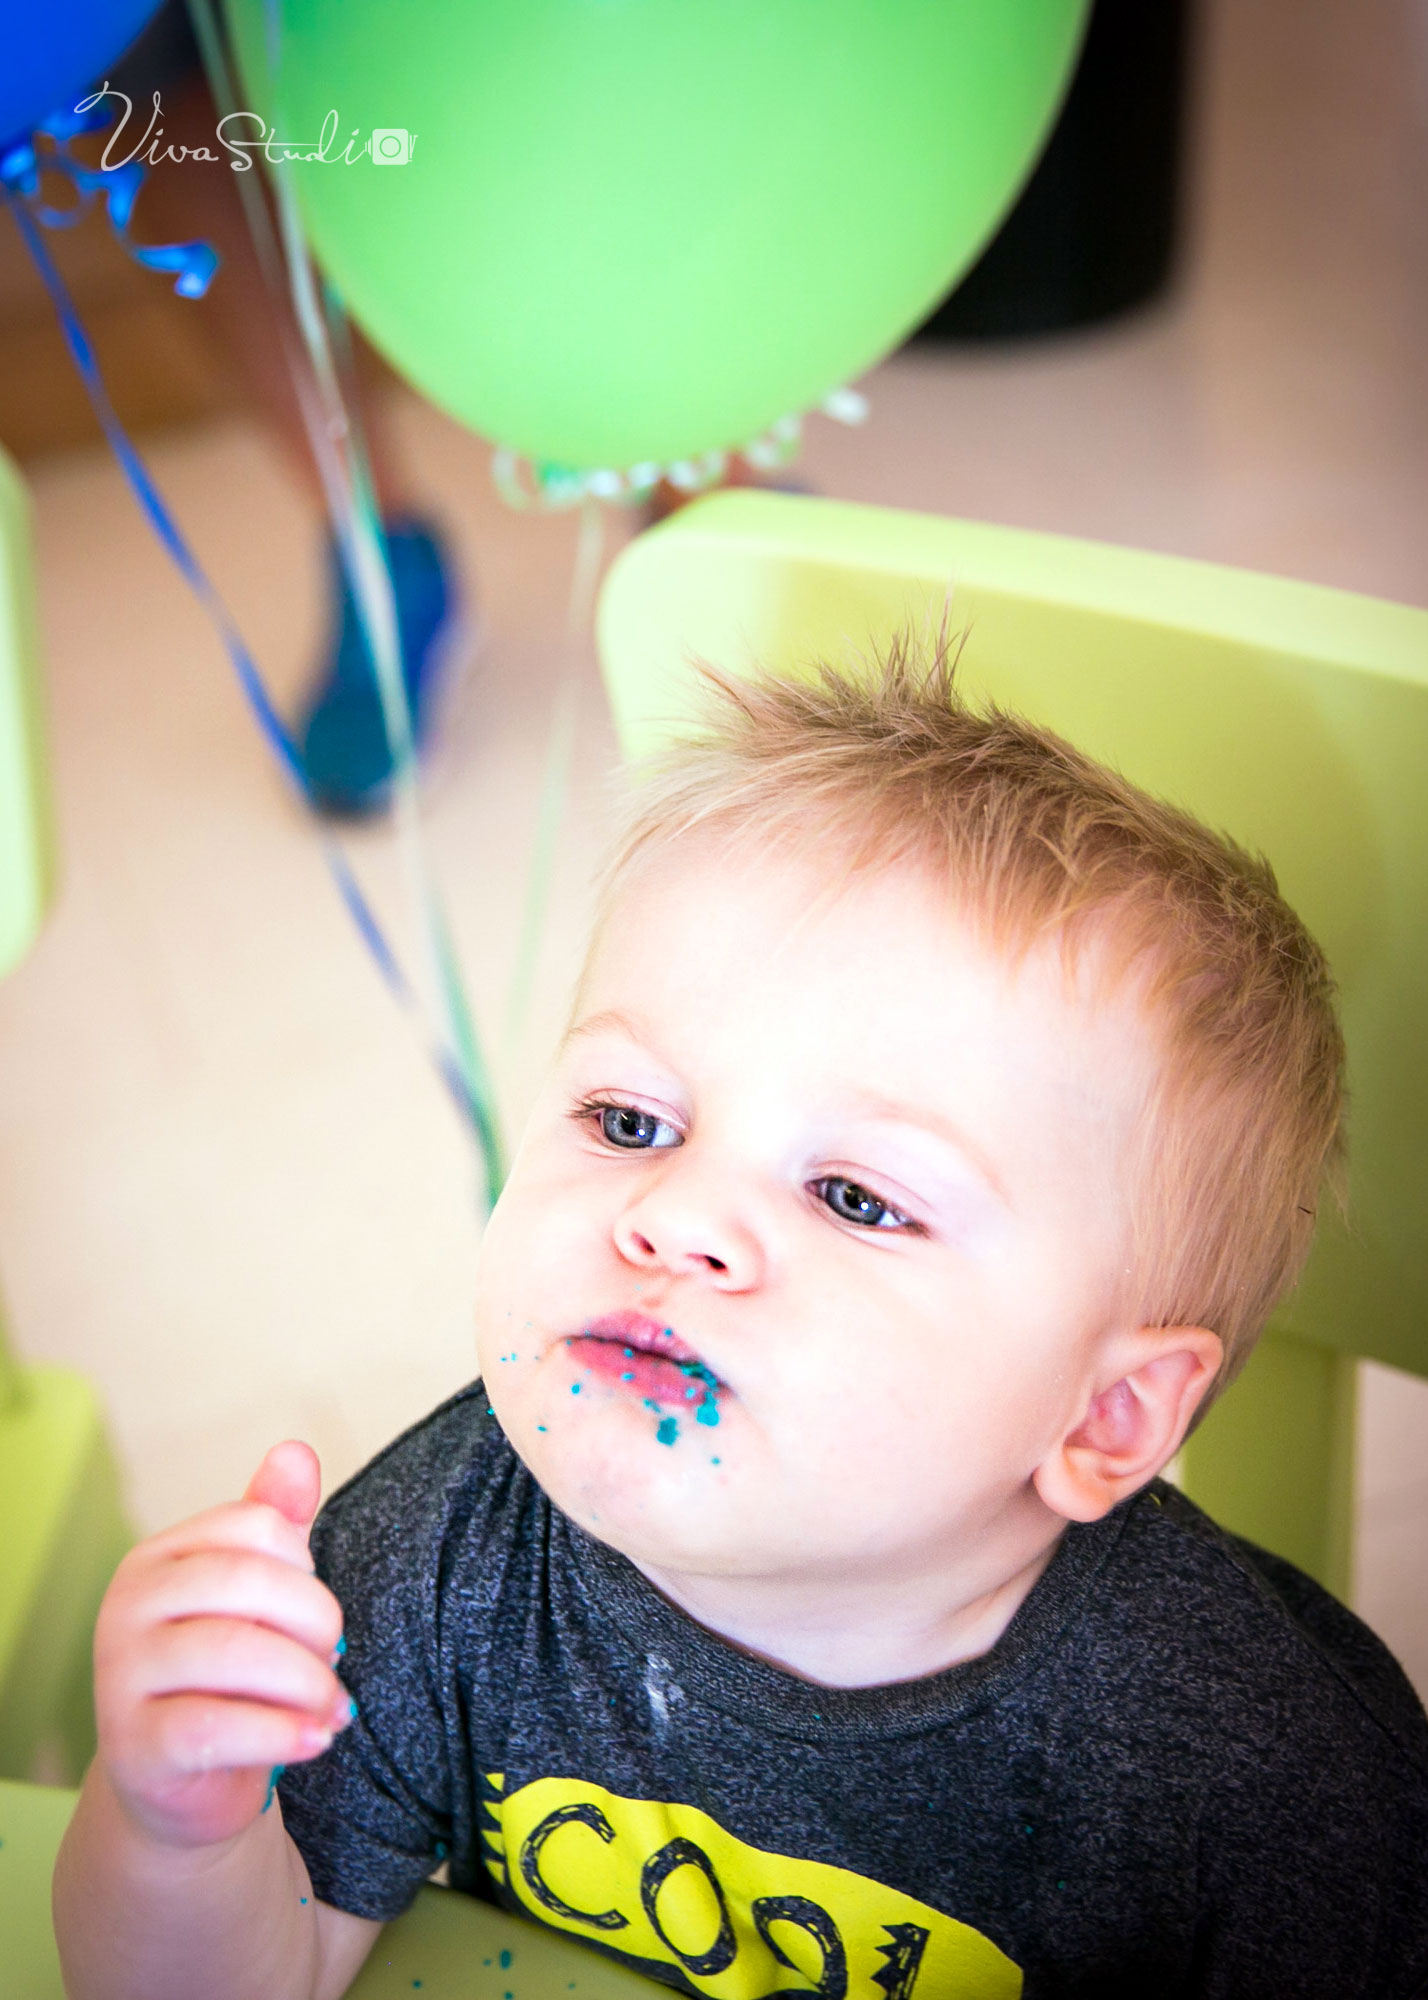 VivaStudio_Design_Photograpphy_Brisbane_Baby_Sidney_1st_Birthday_Party0140-5x7-org